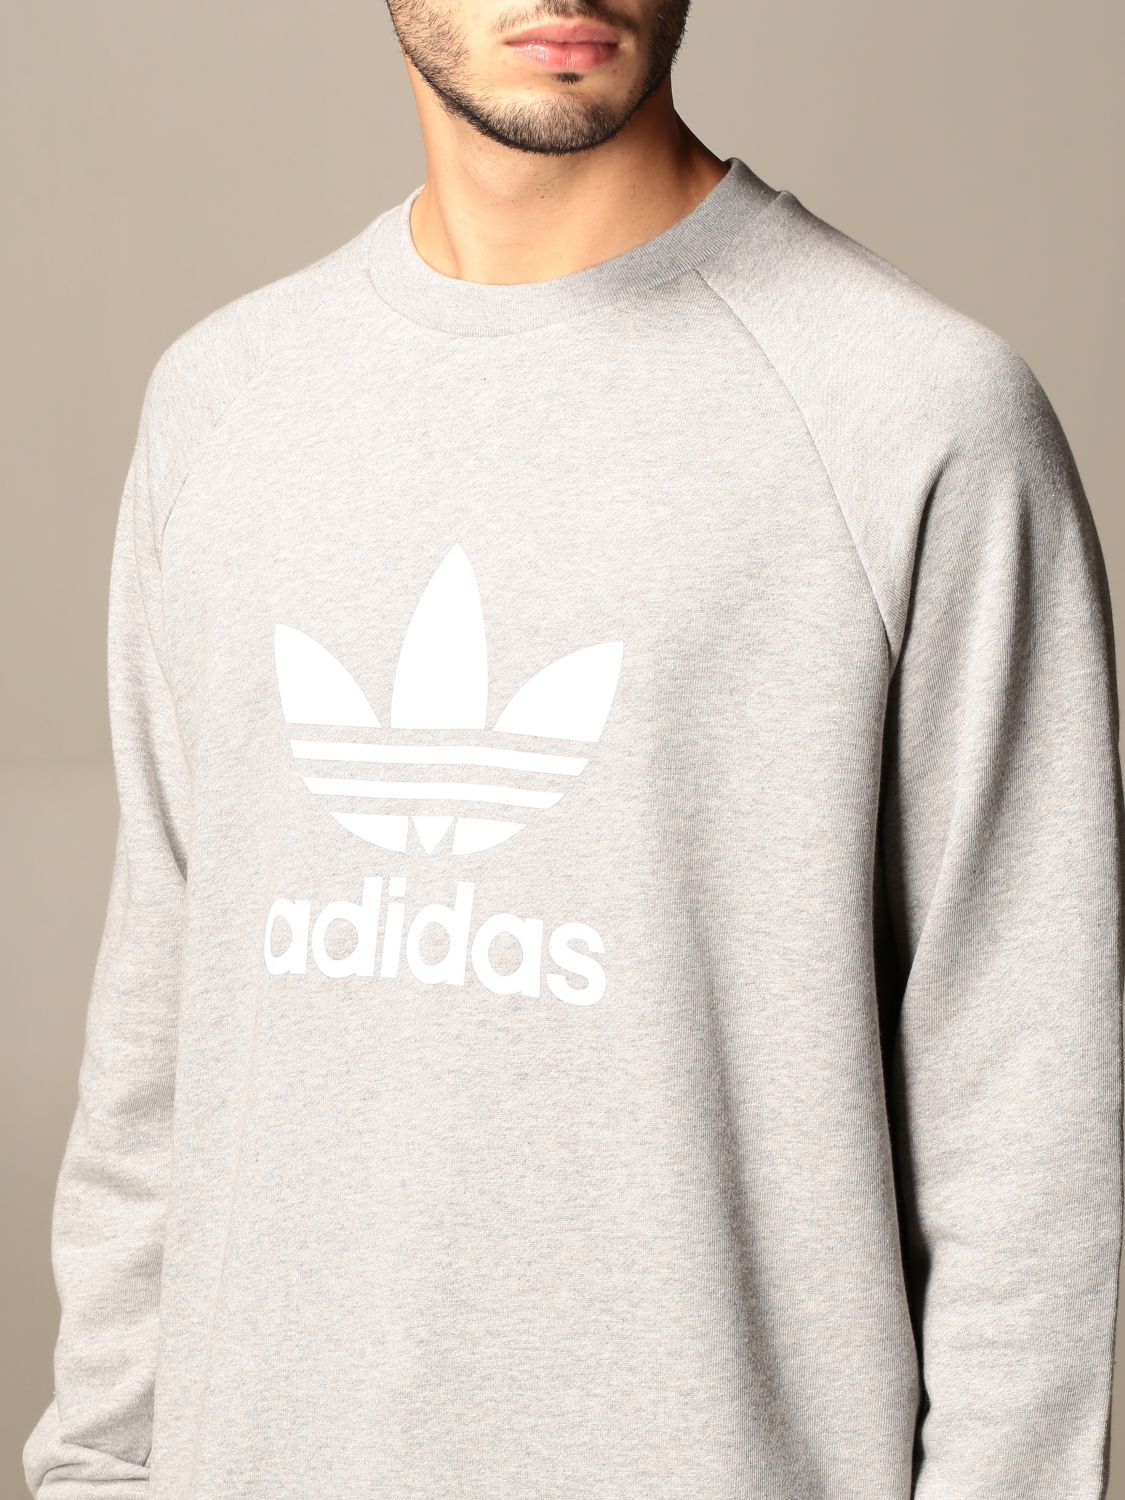 Sweatshirt Adidas Originals: Sweatshirt men Adidas Originals grey 4